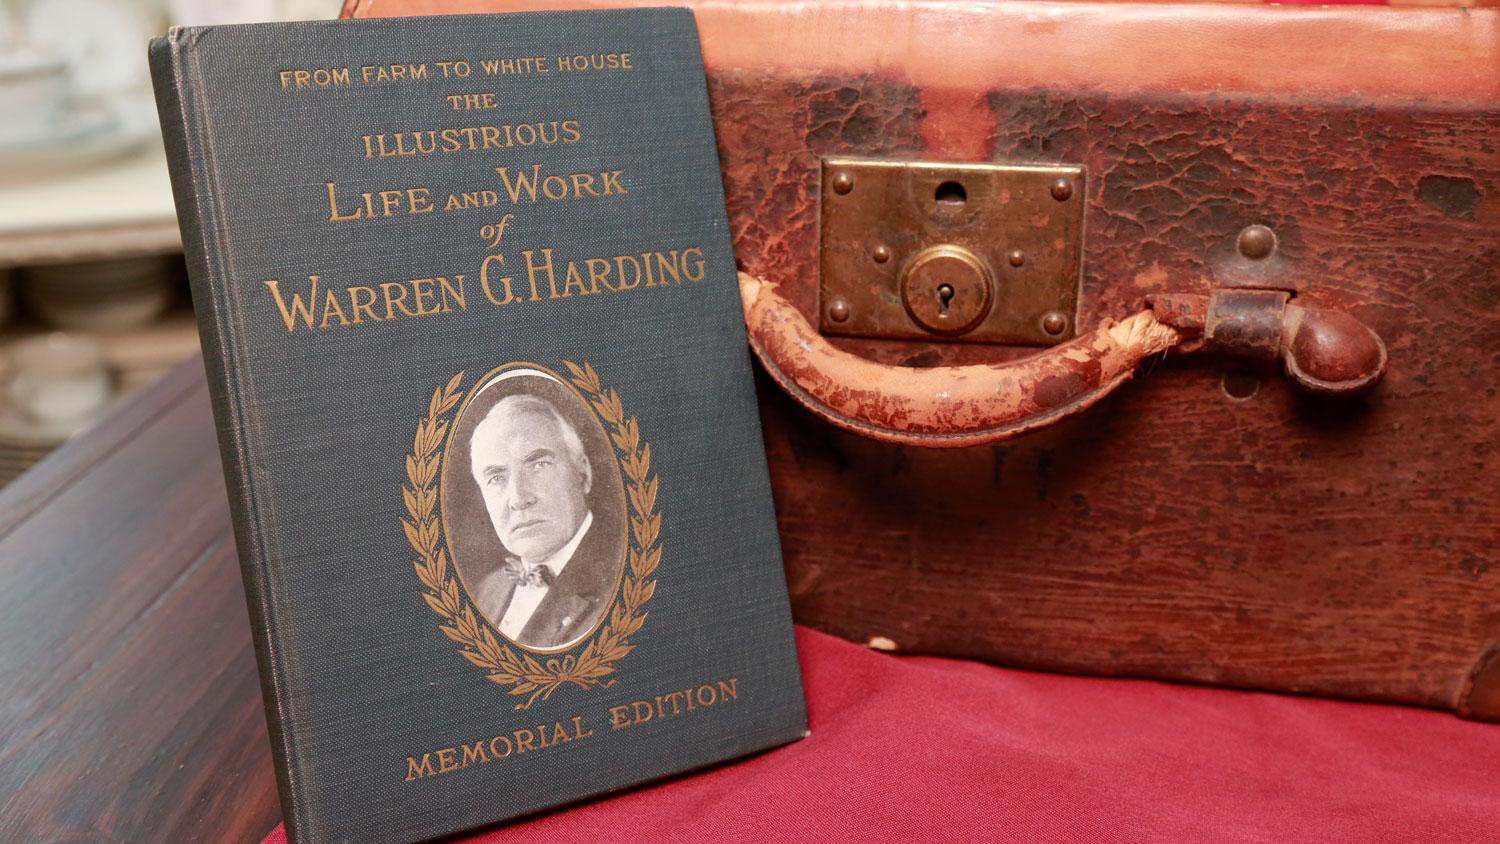 The Illustrious Life and Work of Warren G. Harding and hat box with the initials WGH